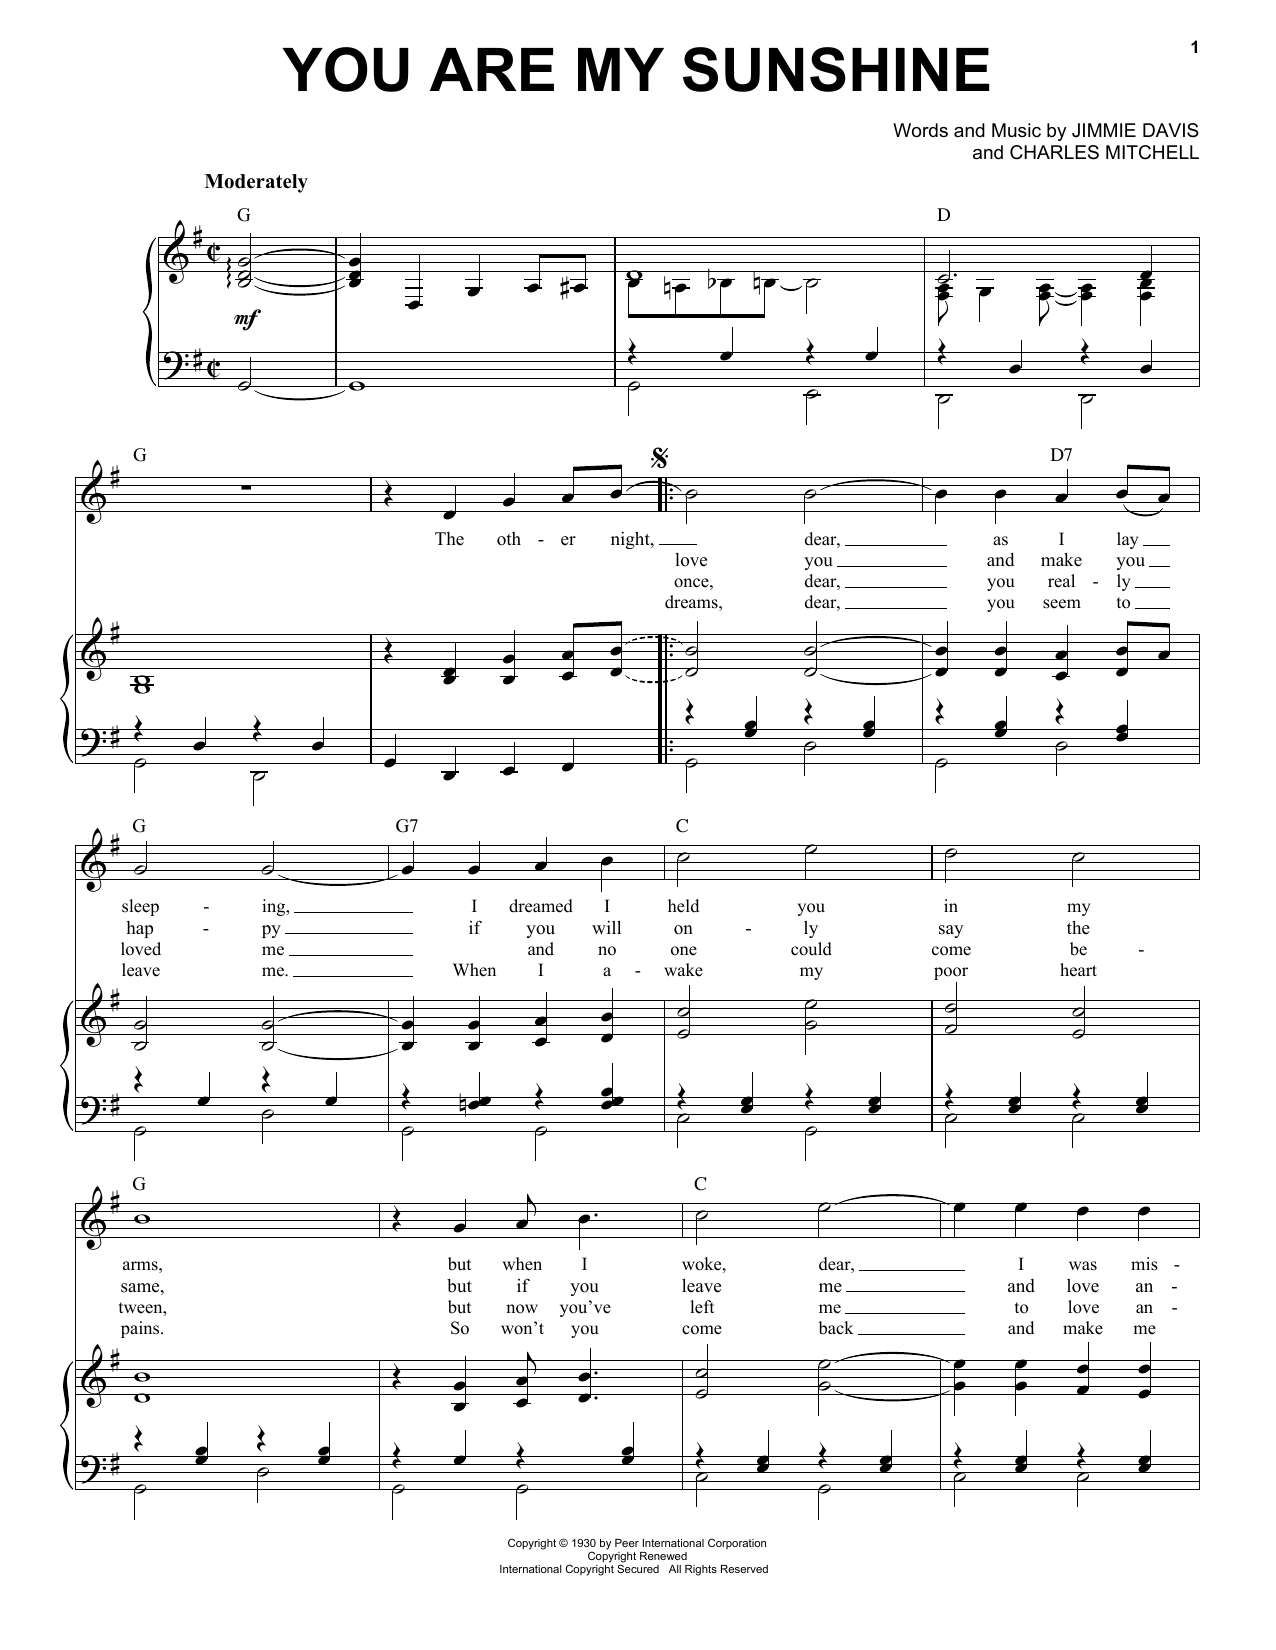 Norman Blake You Are My Sunshine sheet music notes and chords